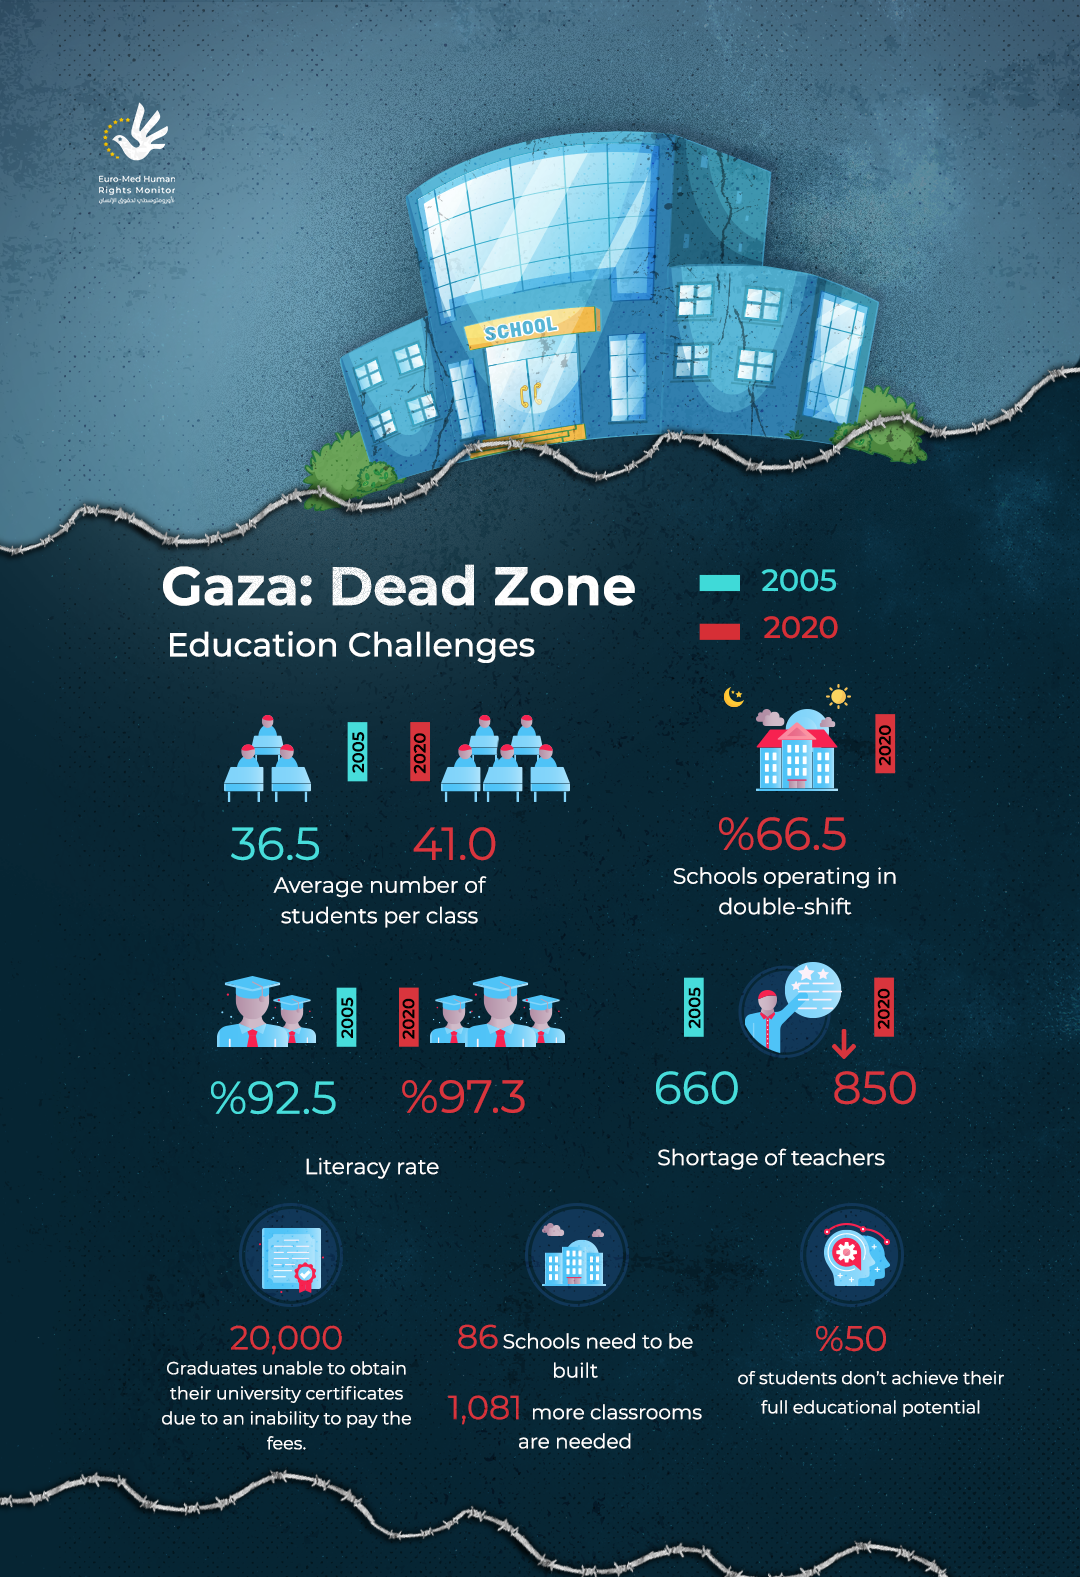 Gaza: Dead Zone| Education Challenges